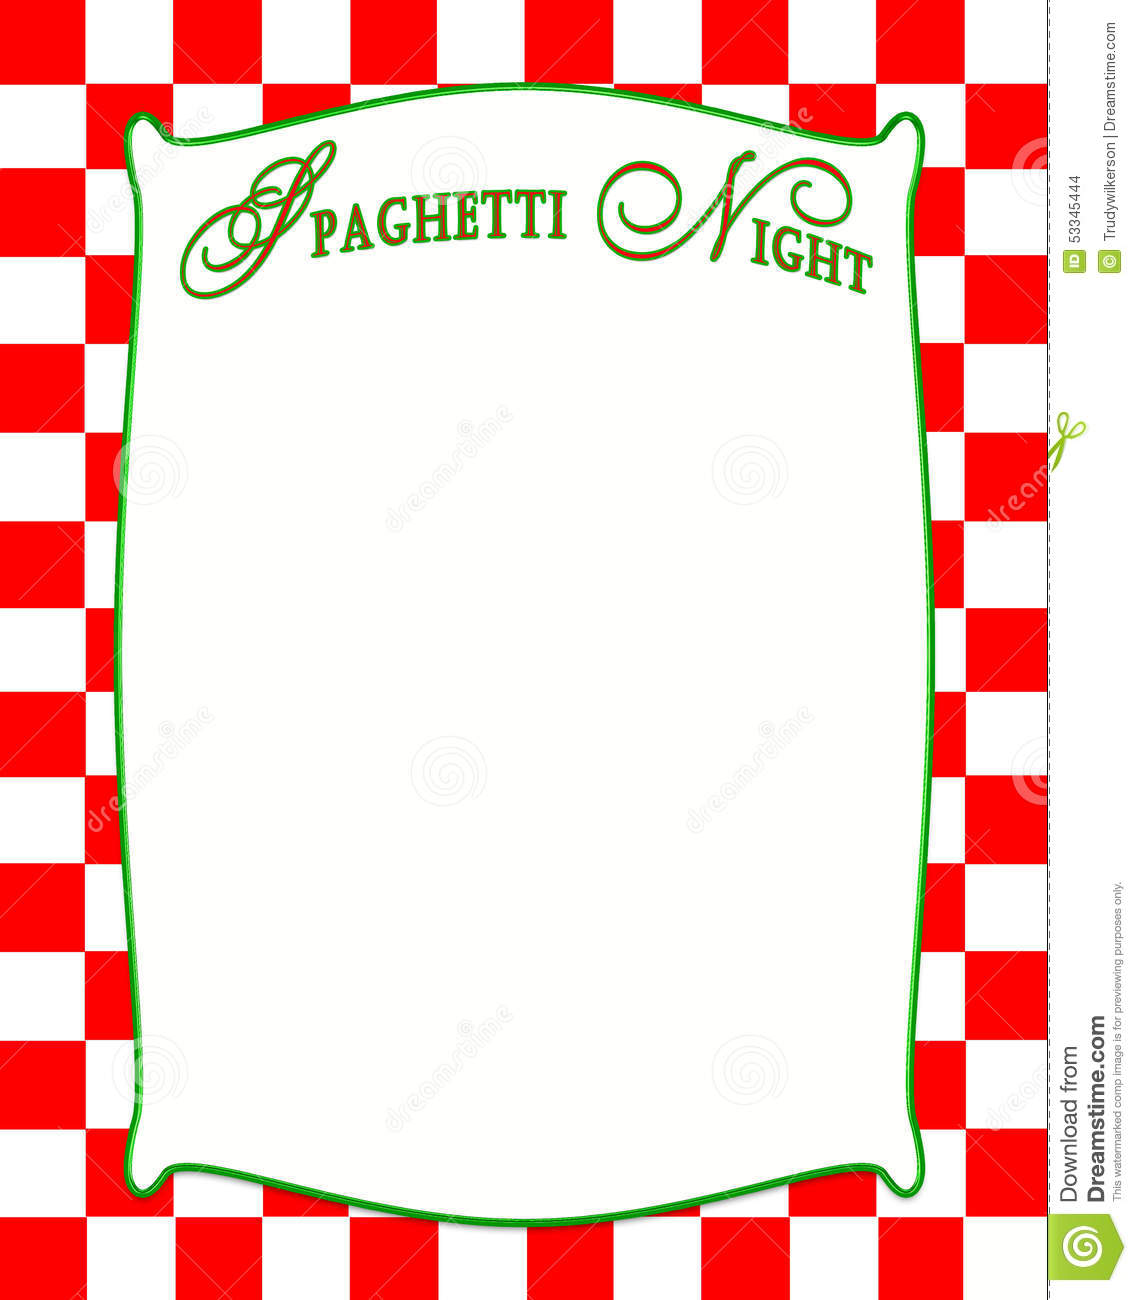 hight resolution of spaghetti night background in red checkered pattern stock